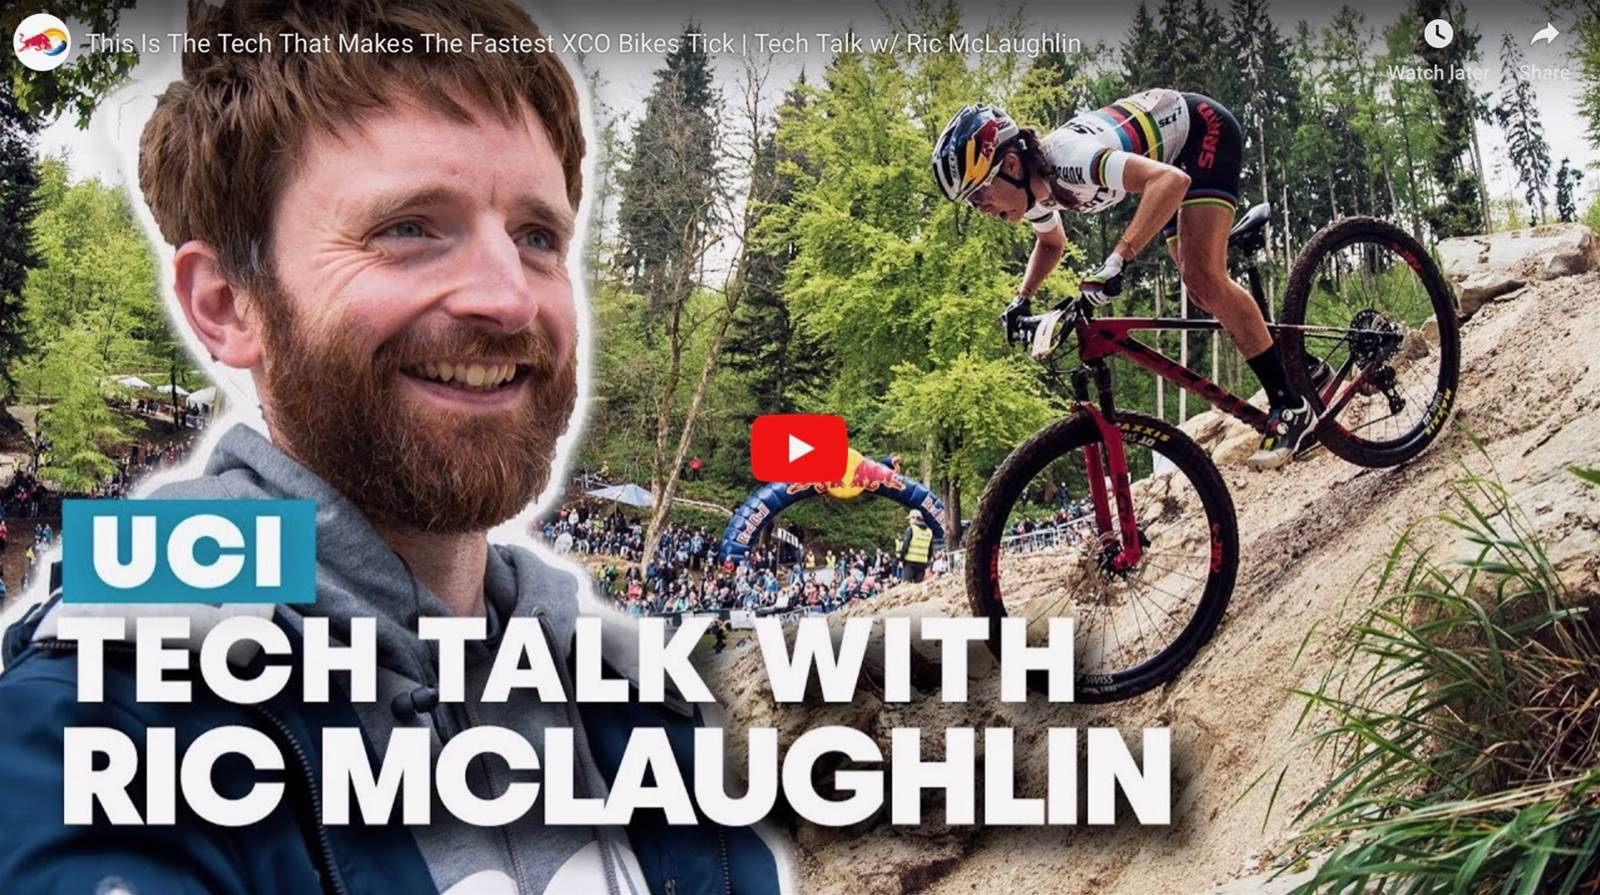 Redbull XCO bike tech check